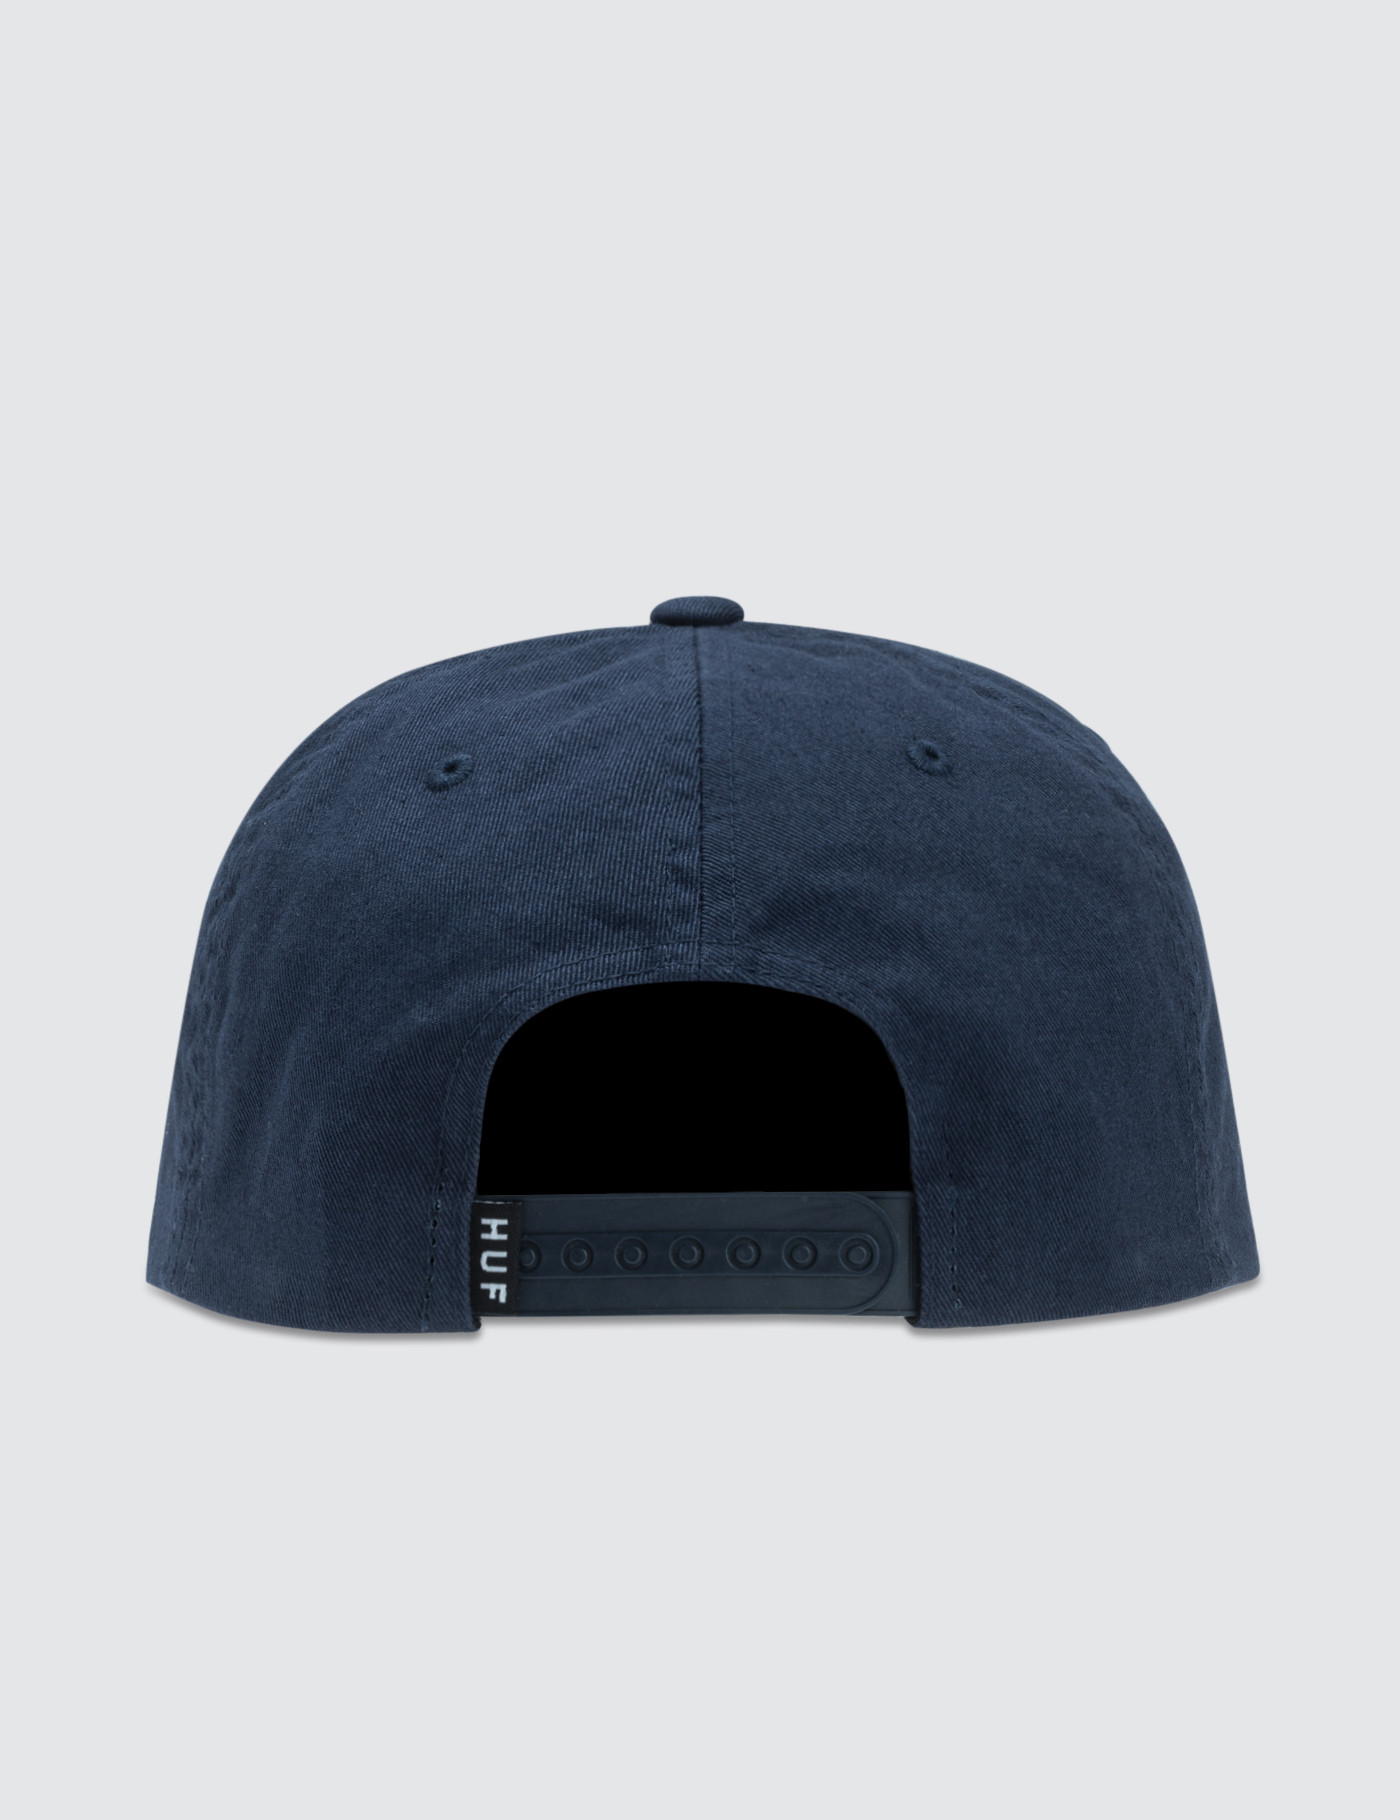 Buy Original HUF Banana Snapback Hat at Indonesia  701299619910